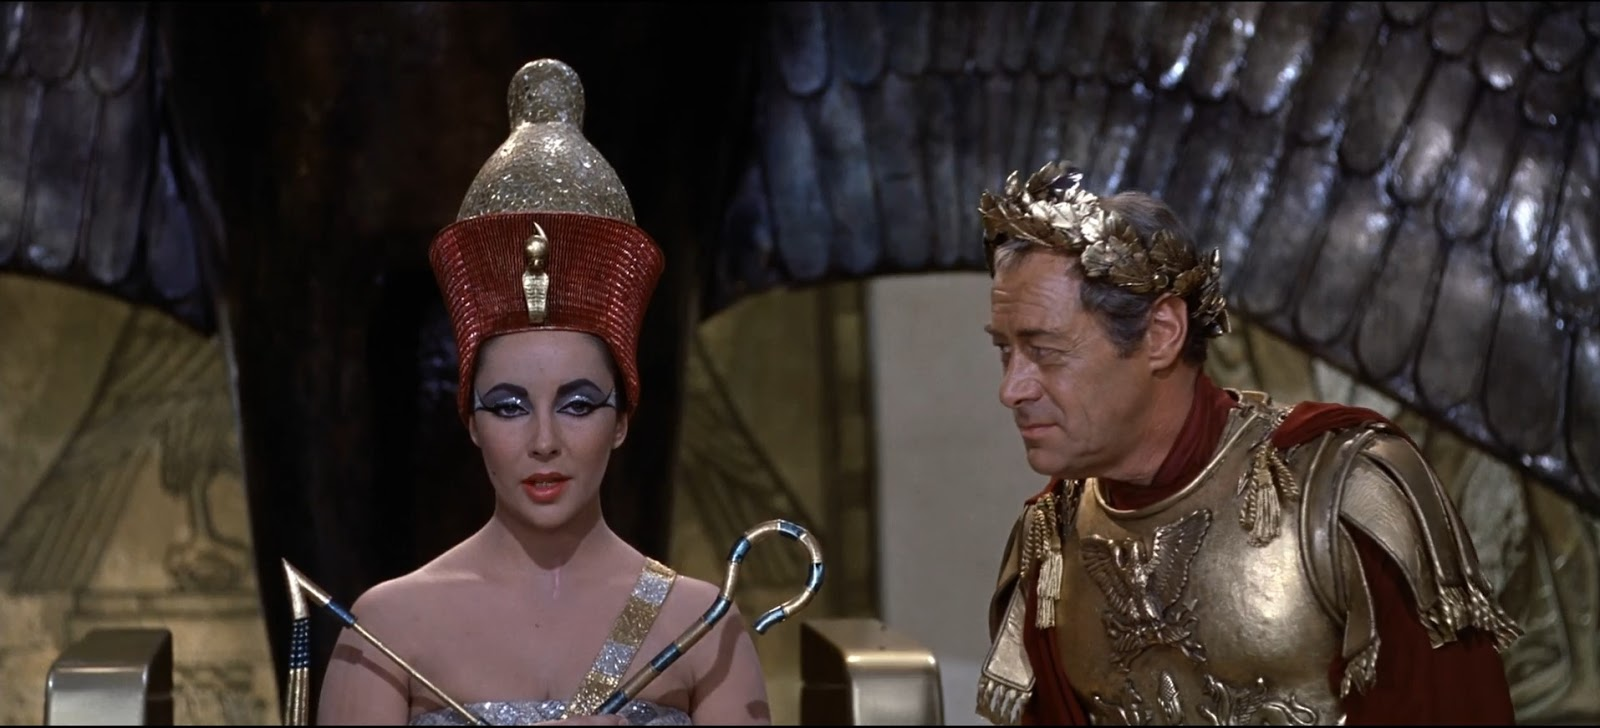 Cleopatra 1963 Dual BRRip x264 1080 8 GB Zippy